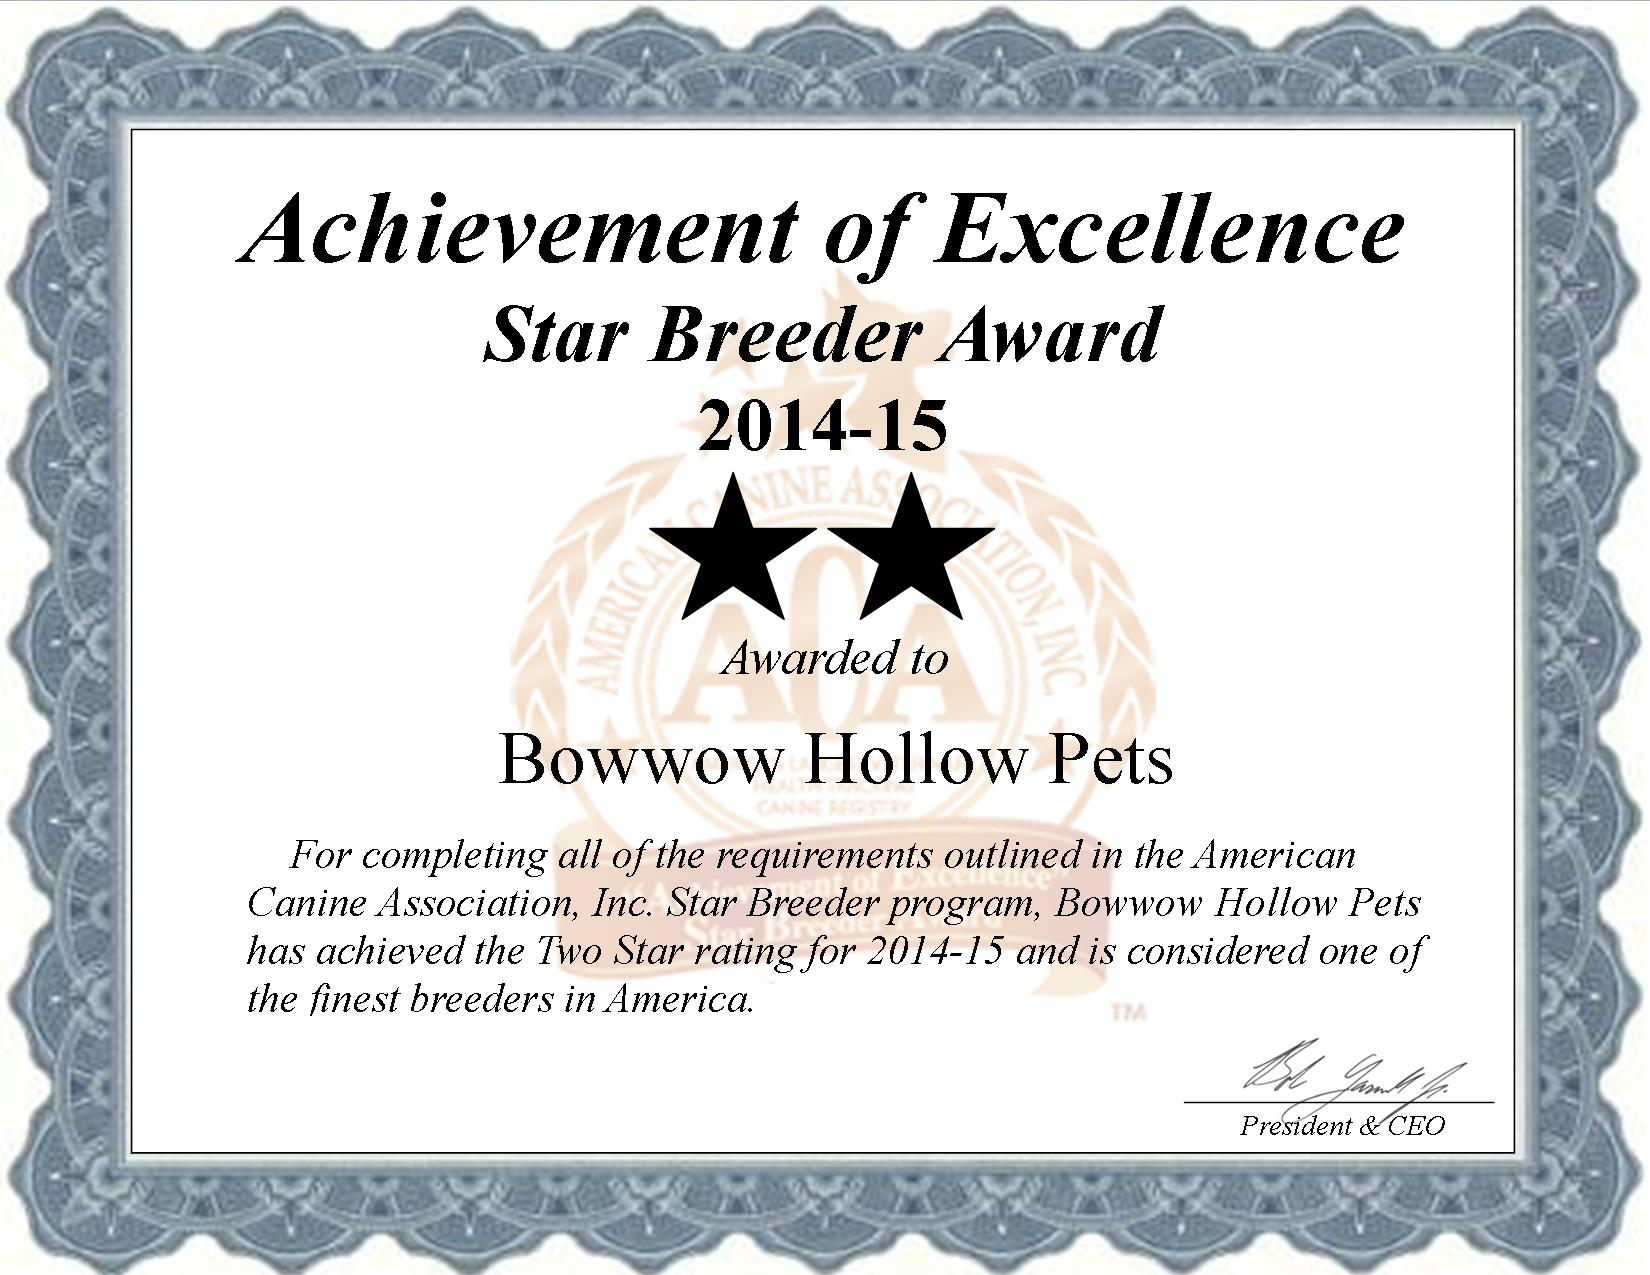 Bowwow, Hollow, Pets, dog, breeder, kennel, breeders, Harrisburg, Pennsylvania, PA, dog, puppy, puppies, puppy, mill, show, puppymill, professional, quality, good, top, Bowwow_Hollow_Pets, starbreeders